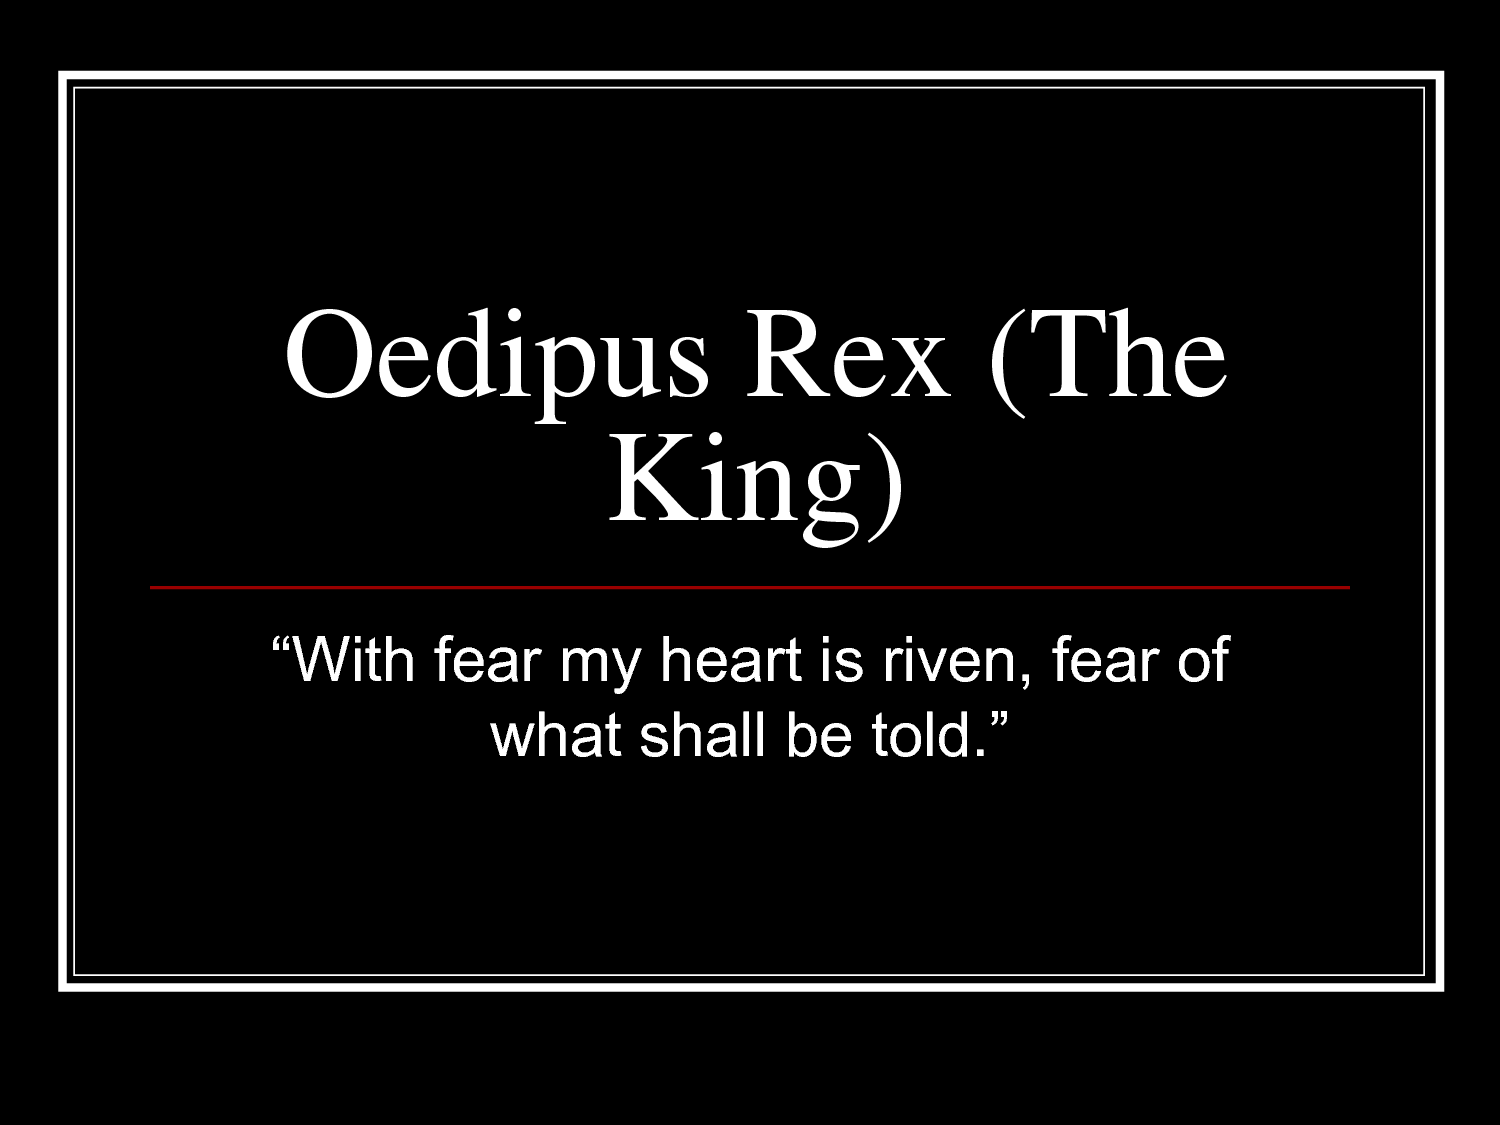 oedipus rex quotes about fate quotesgram follow us